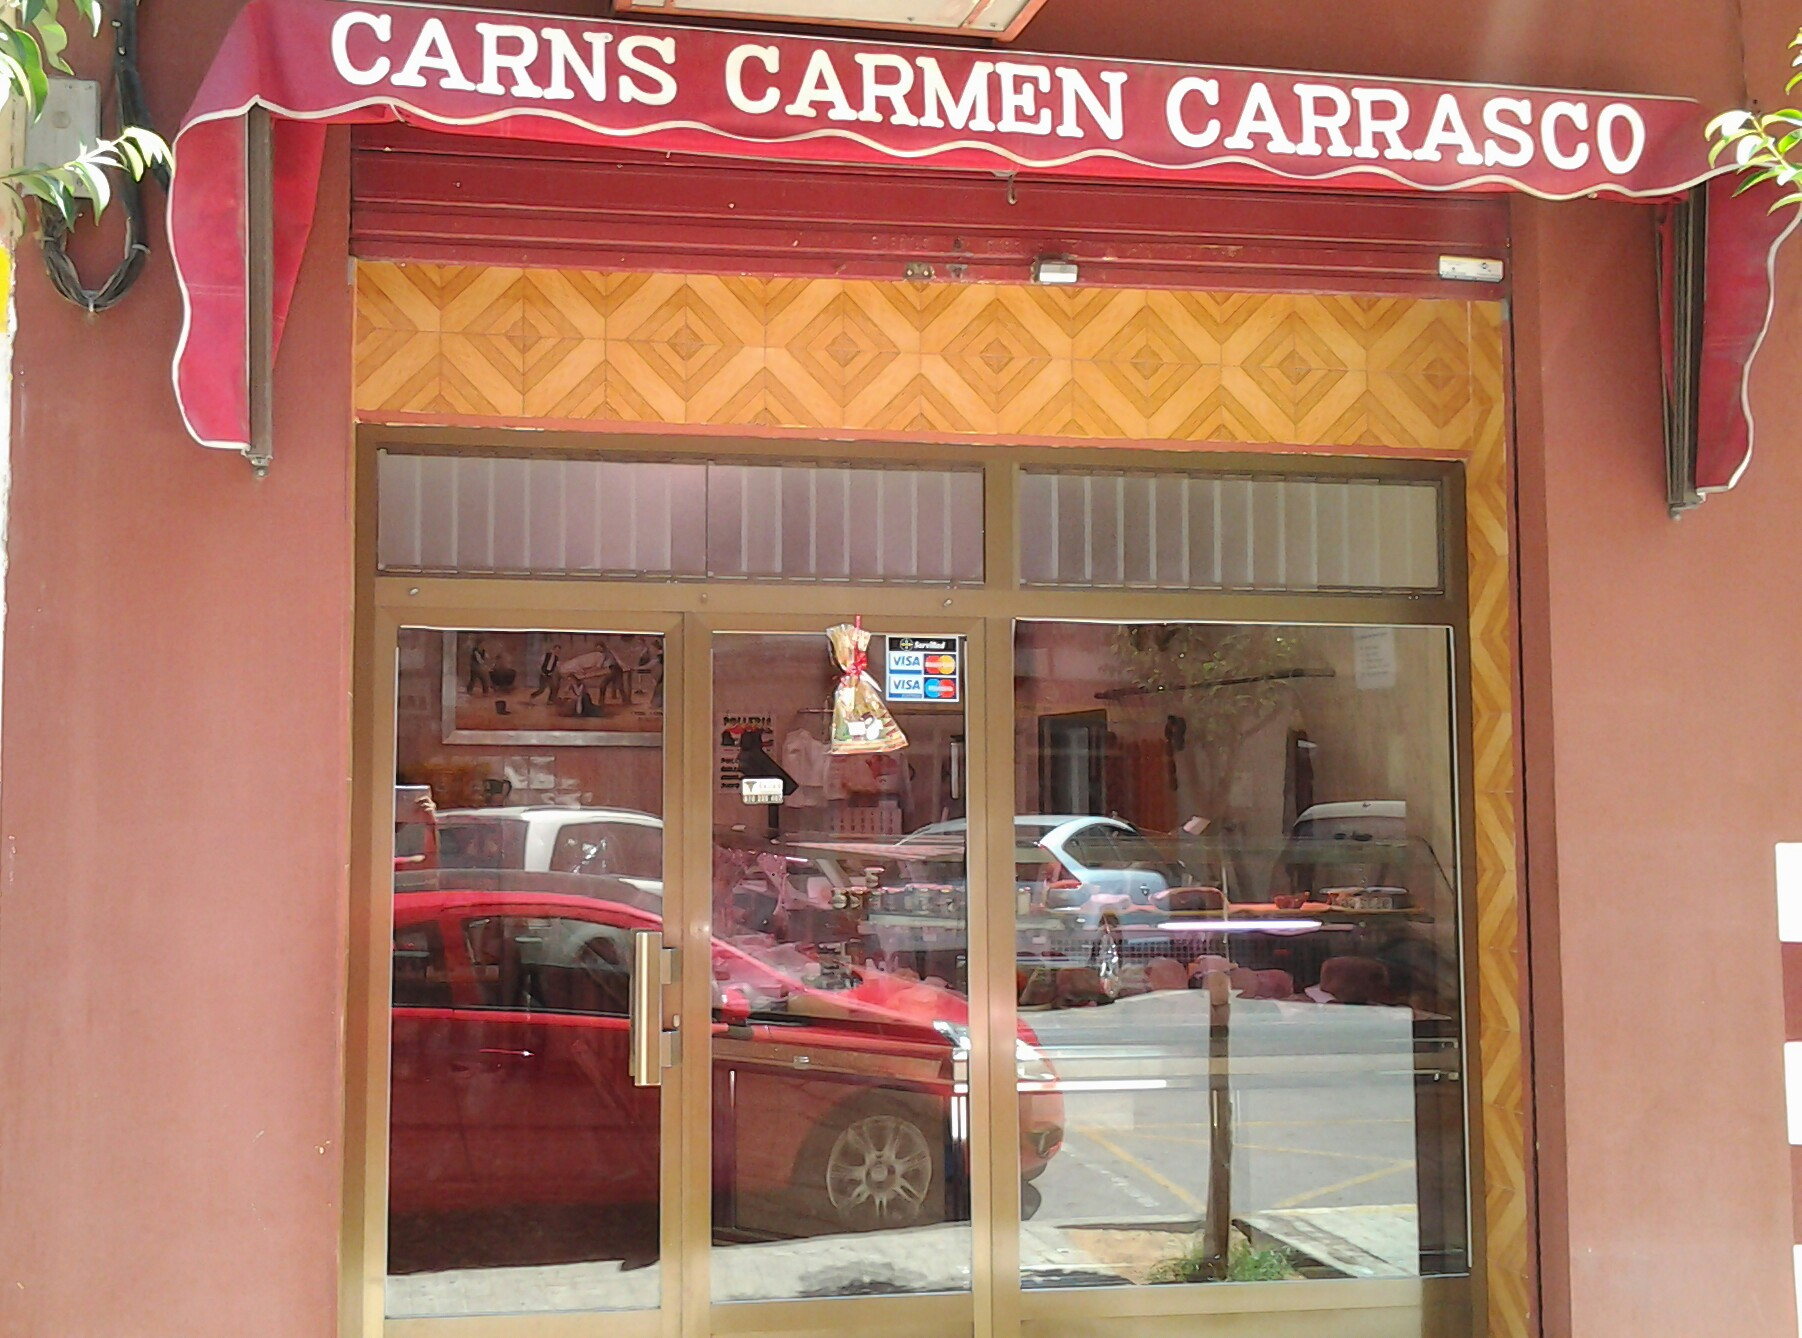 CARNS CARMEN CARRASCO